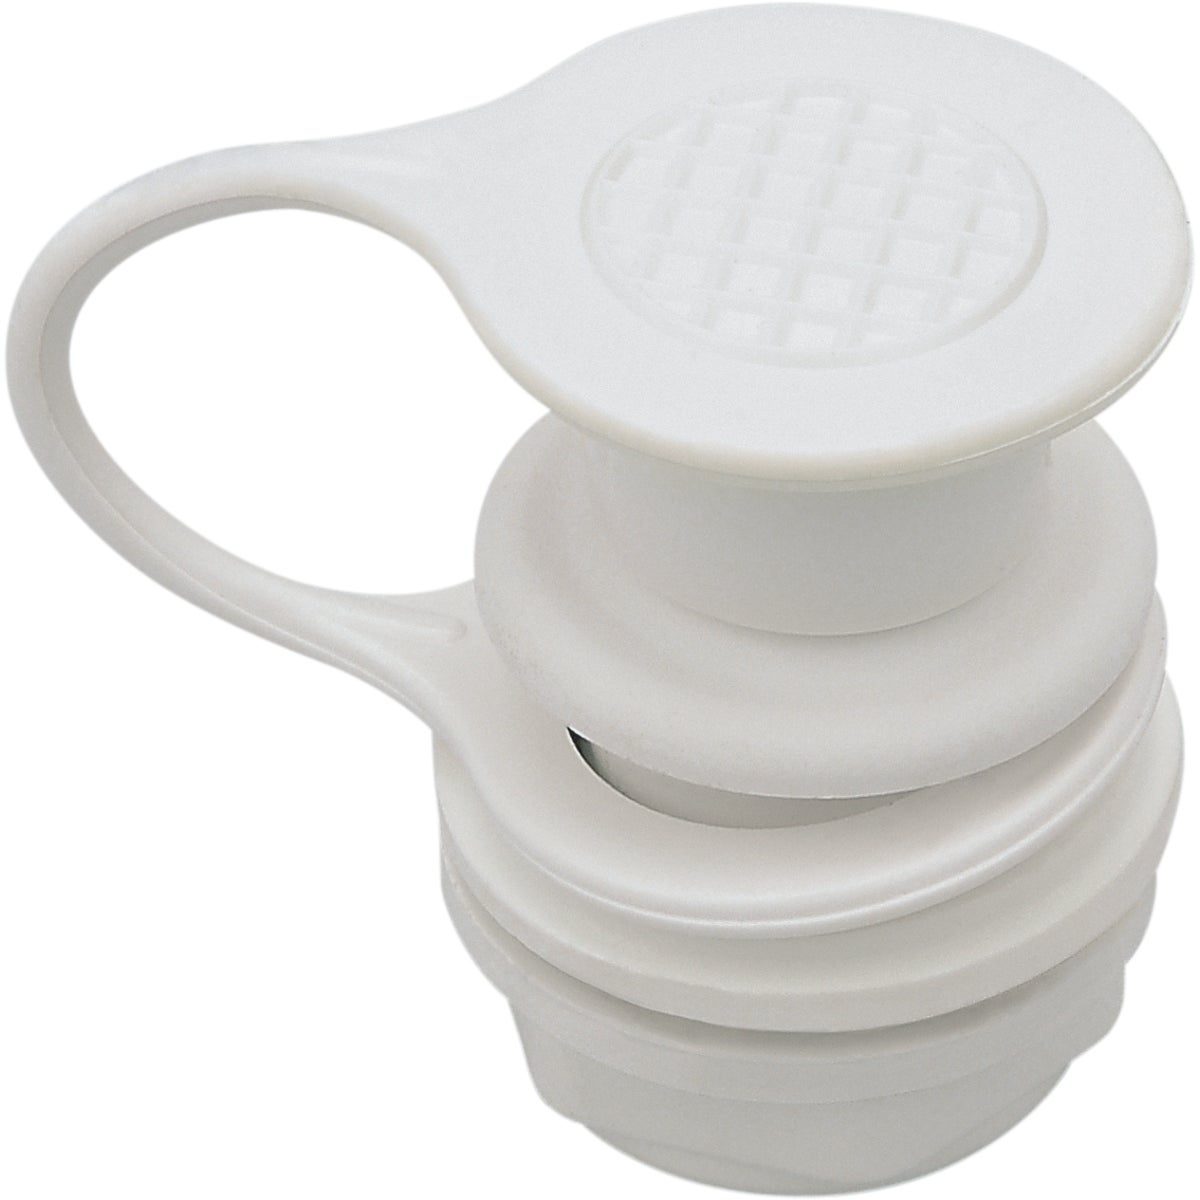 REPLACEMENT DRAIN PLUG - 24010 by Igloo Corp